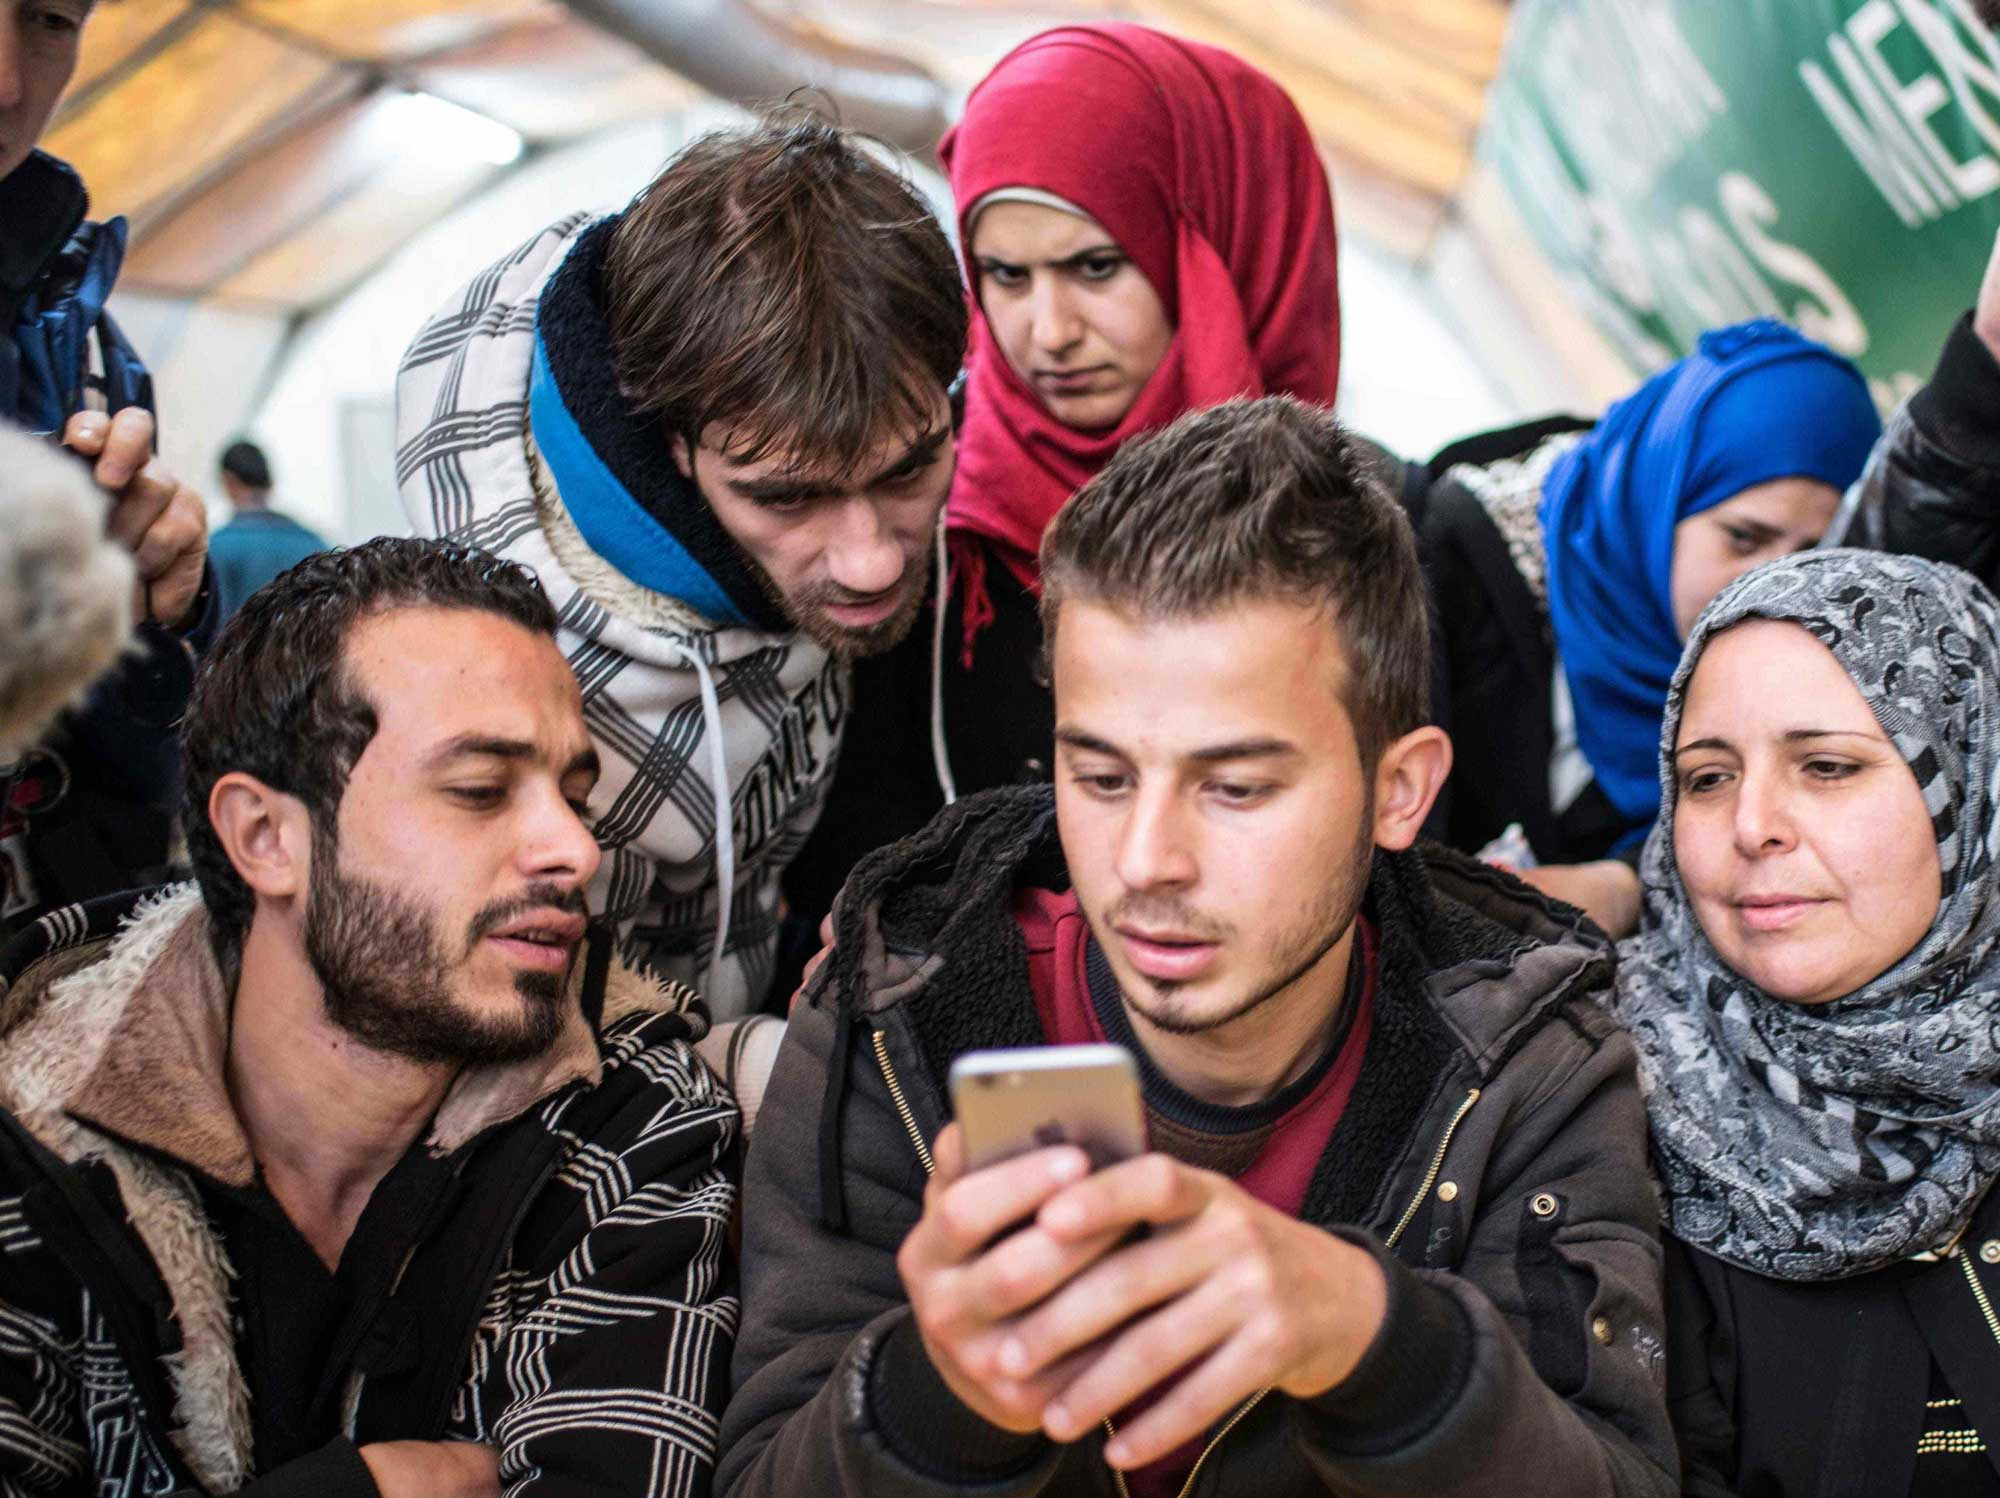 A Syrian refugee family looks at resources on a cell phone